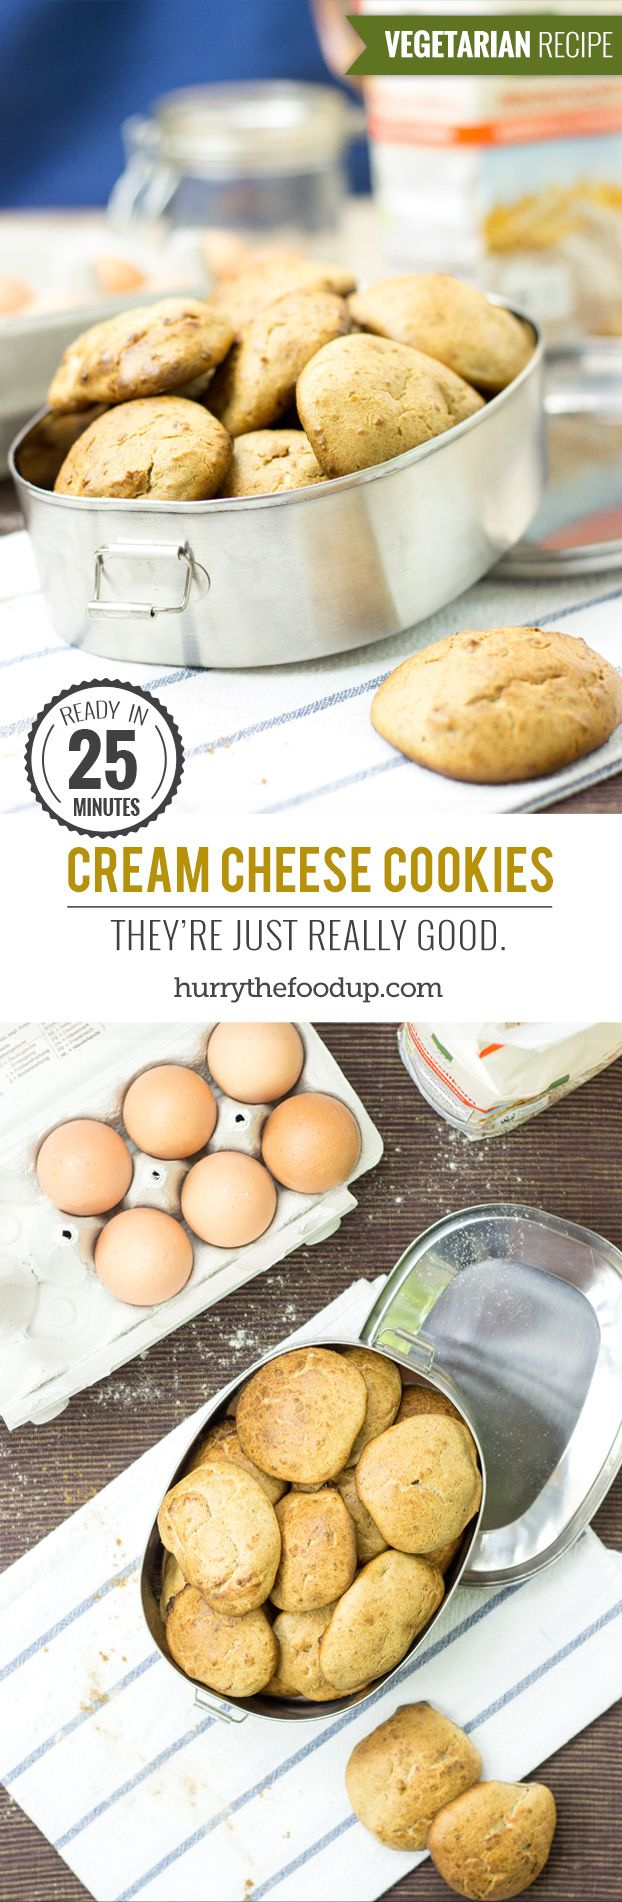 Cream Cheese Cookies. They're just really good. #vegetarian #cookie | hurrythefoodup.com